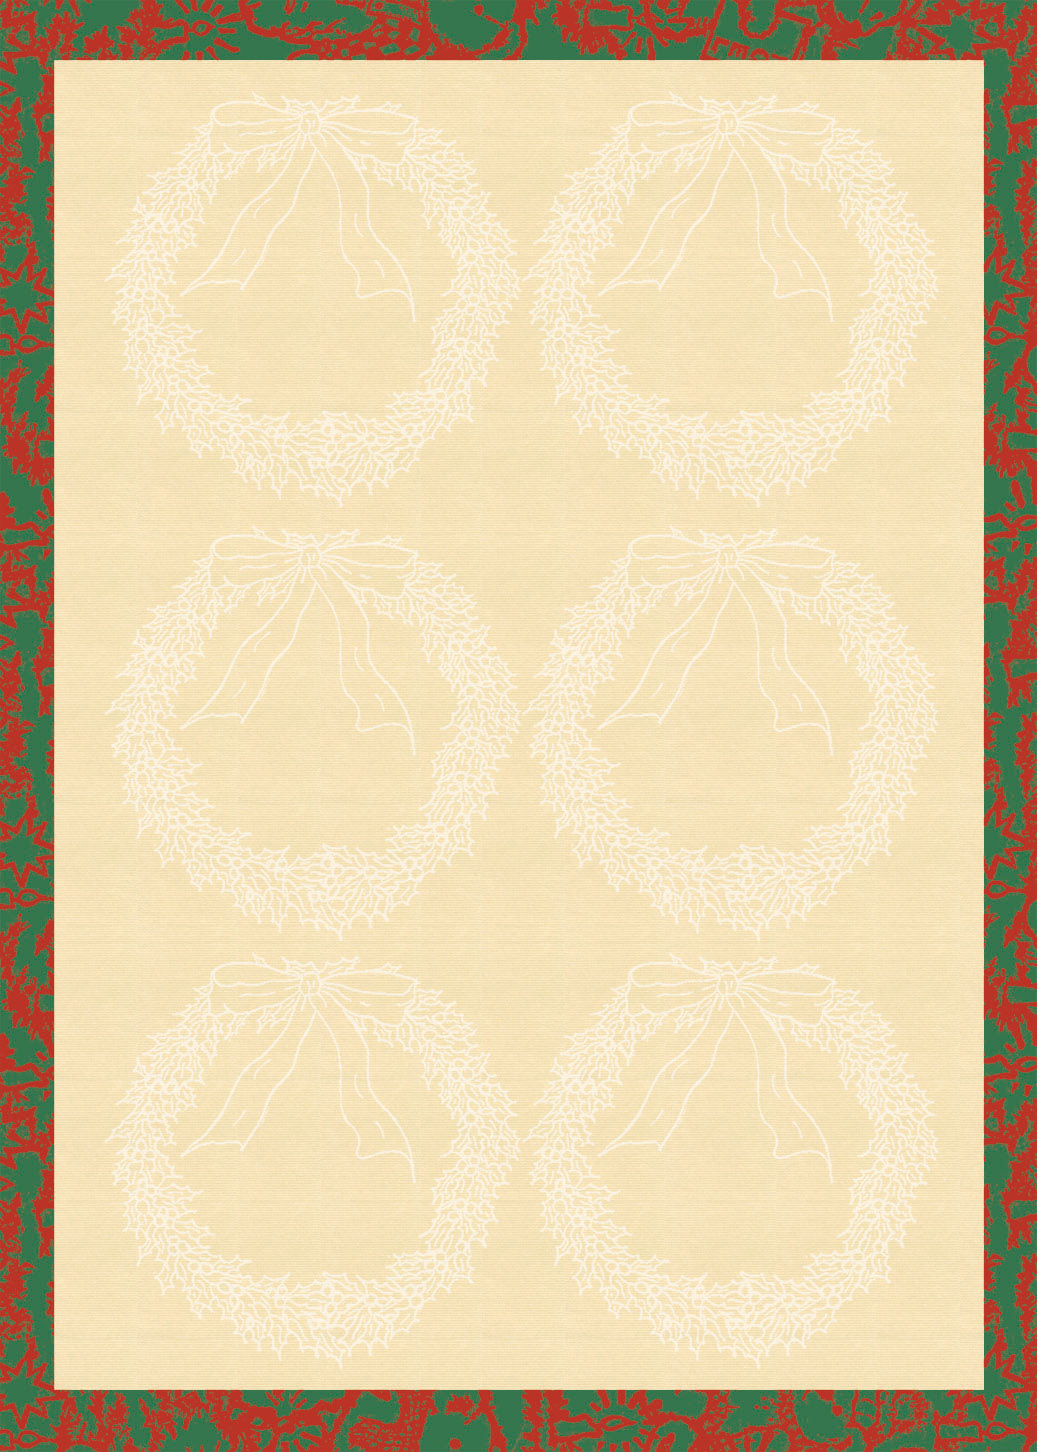 7 Images of Holiday Printable Paper